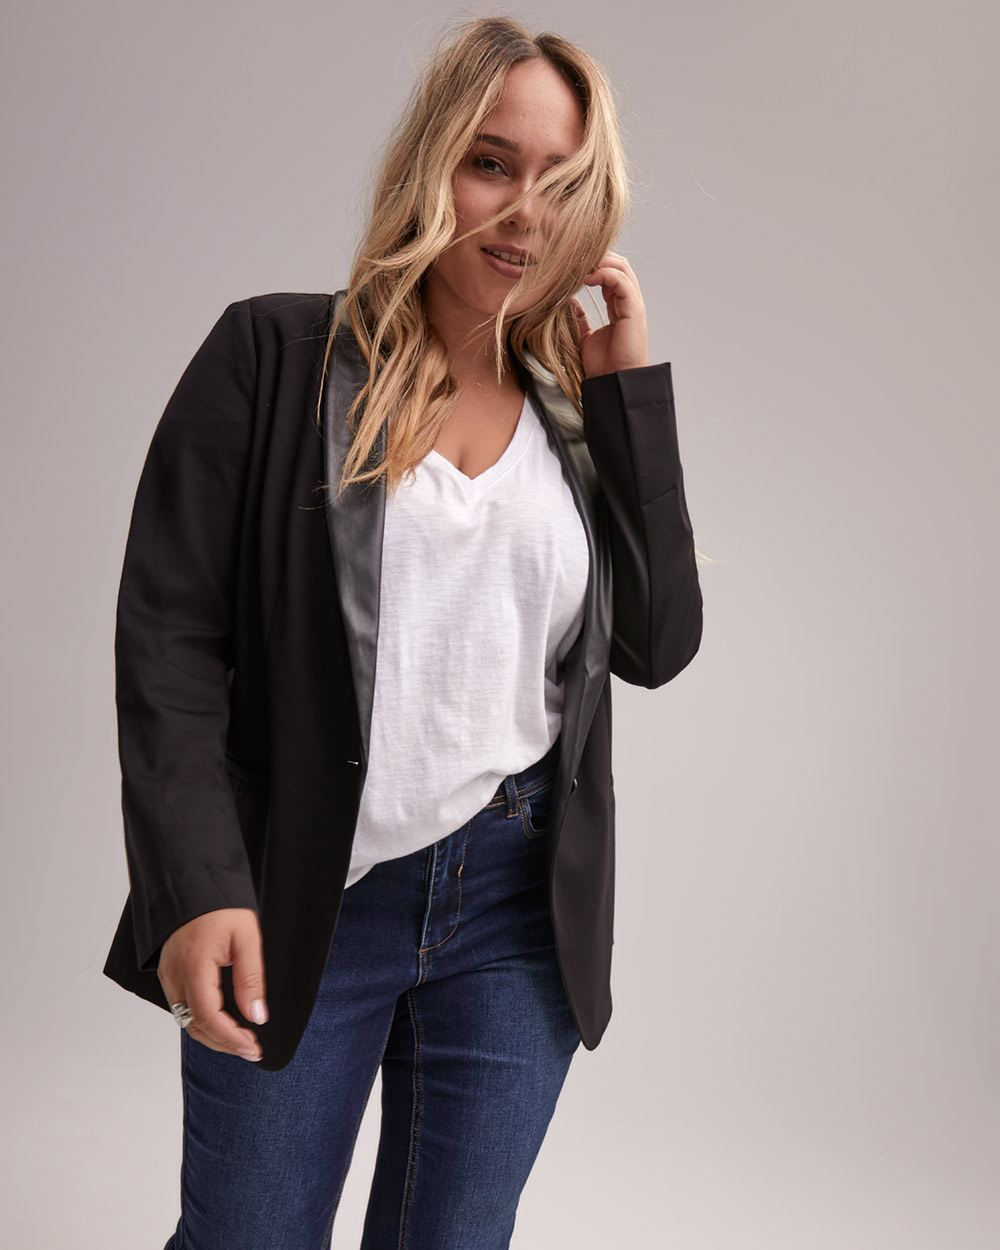 b6cadc386b6 Wear this modern plus size blazer from Michel Studio with practically  anything. From skinny jeans